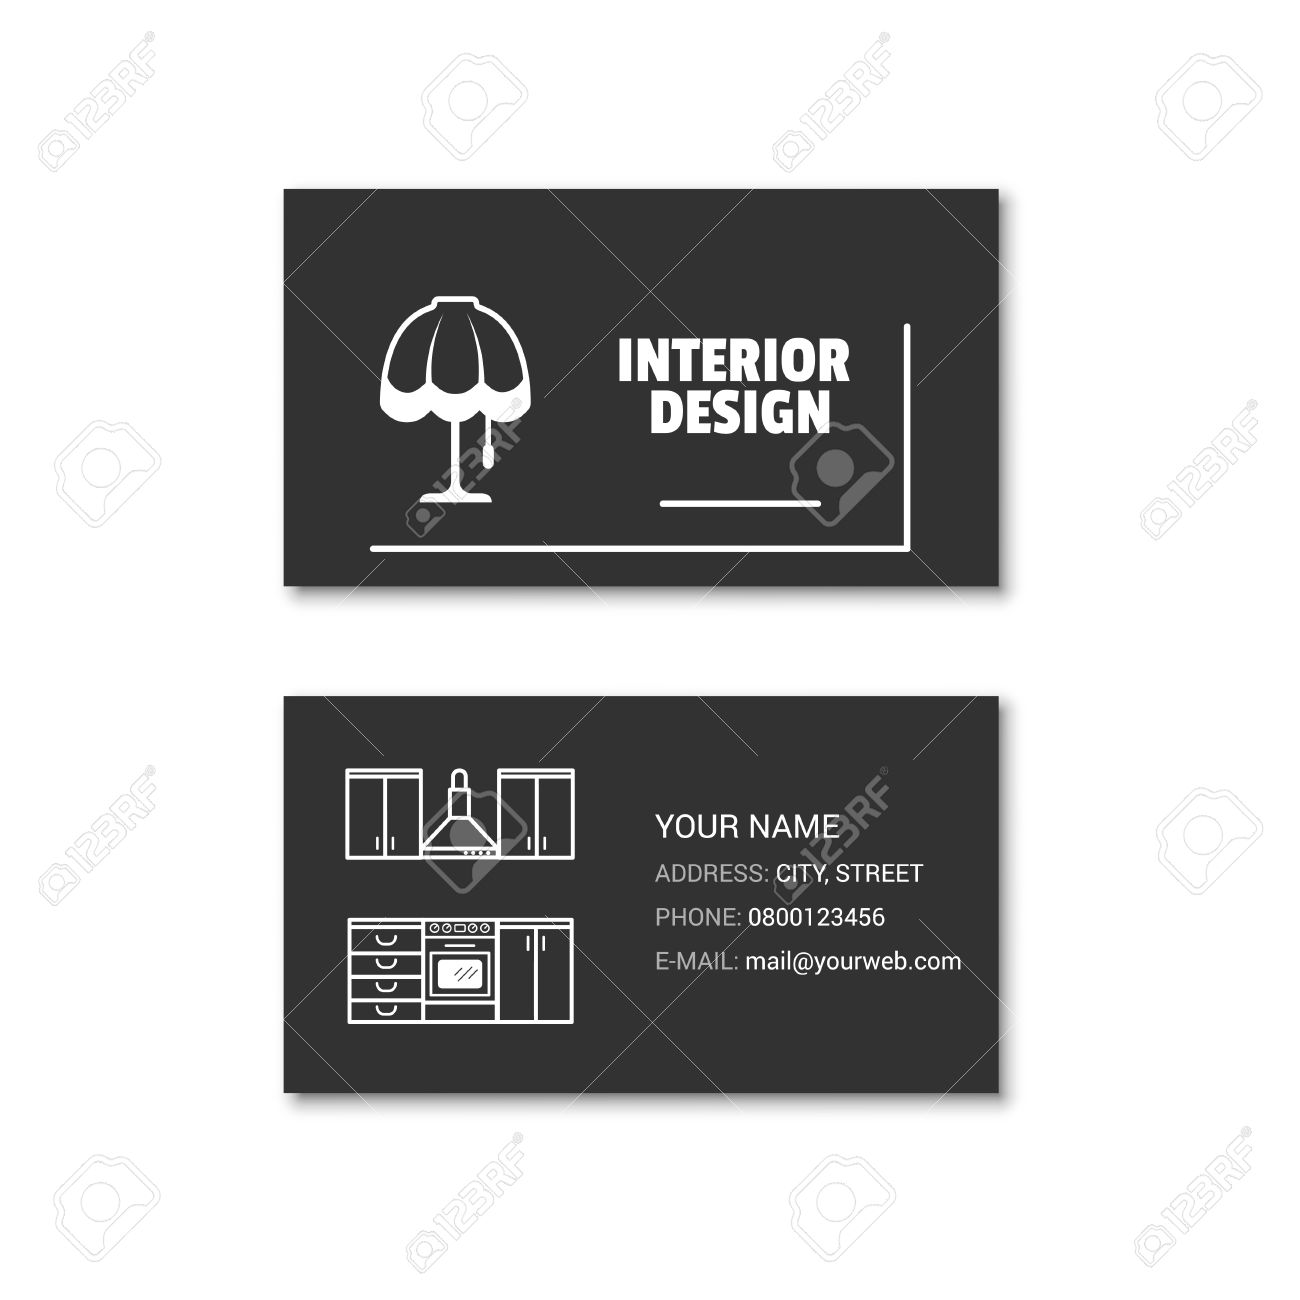 Simple Business Card Of Interior Designer Vector Illustration Isolated On A White Background Stock